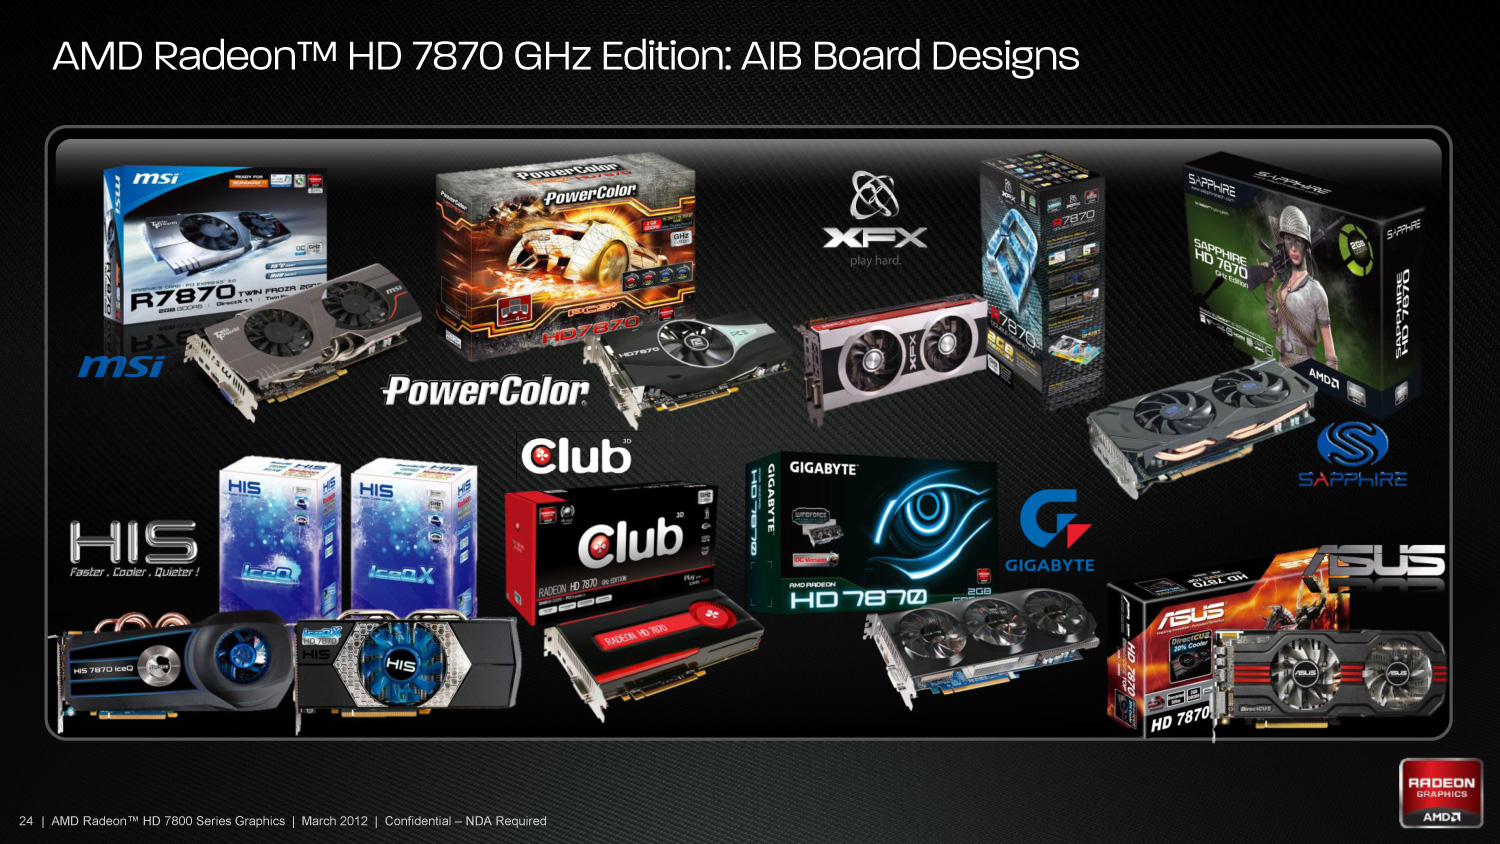 $240 per card, two power consumption and noisethe powercolor hd7870 pcs+ myst edition consumes a lot more power than